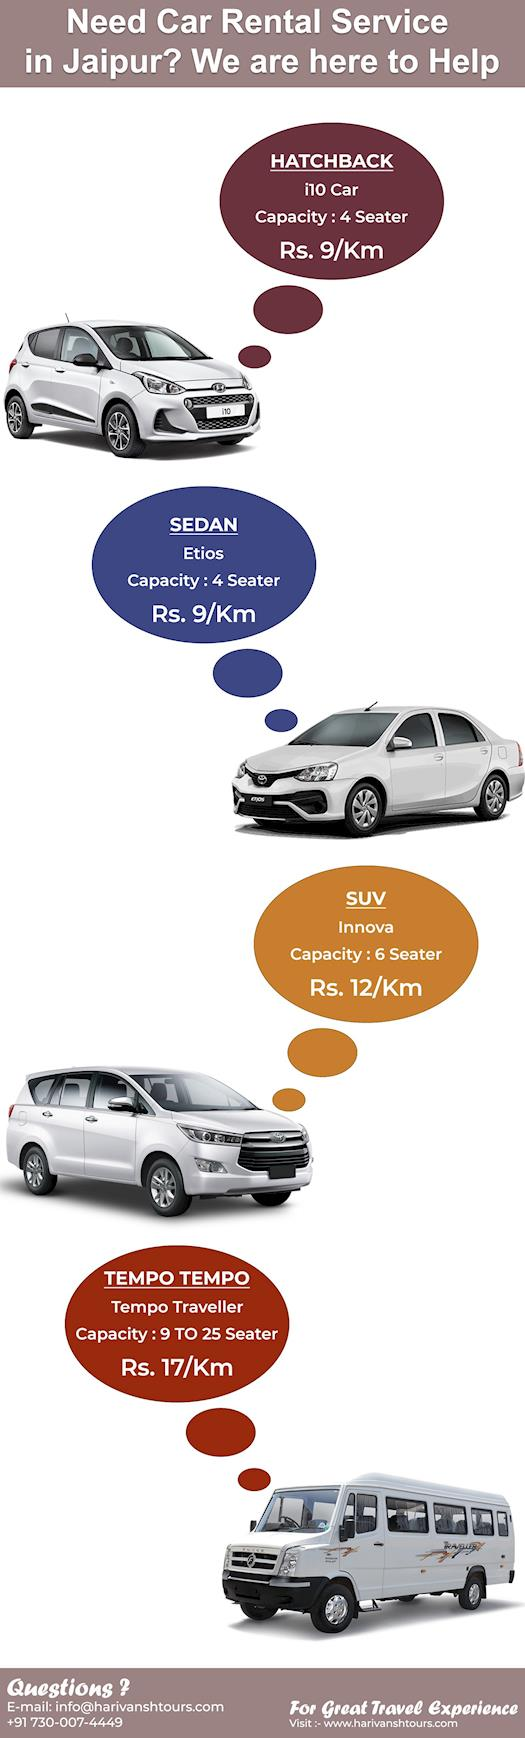 Need Car Rental Service in Jaipur? We are here to Help - Harivansh Tours